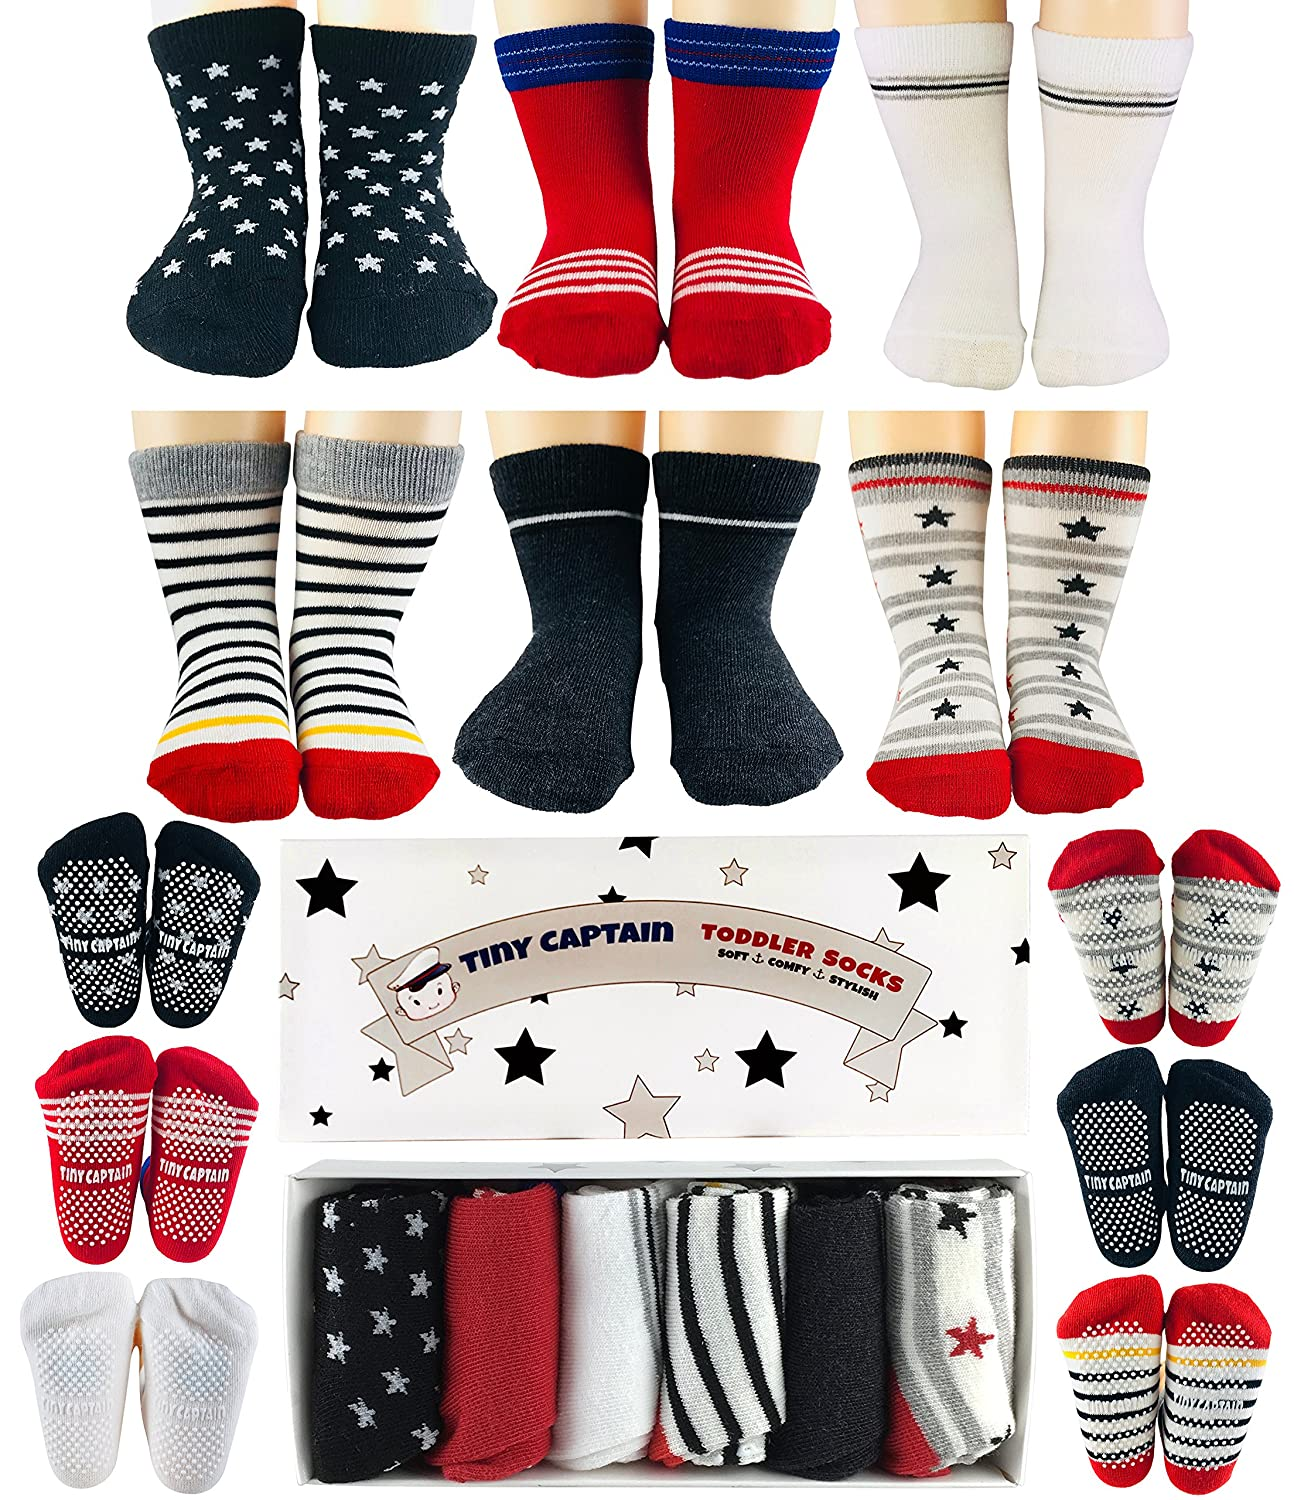 Toddler Boys Socks 1-2 Year Old Baby Boys Anti Slip Grip Sock Gift 8-24 Months Set by Tiny Captain (Red, Black, White)